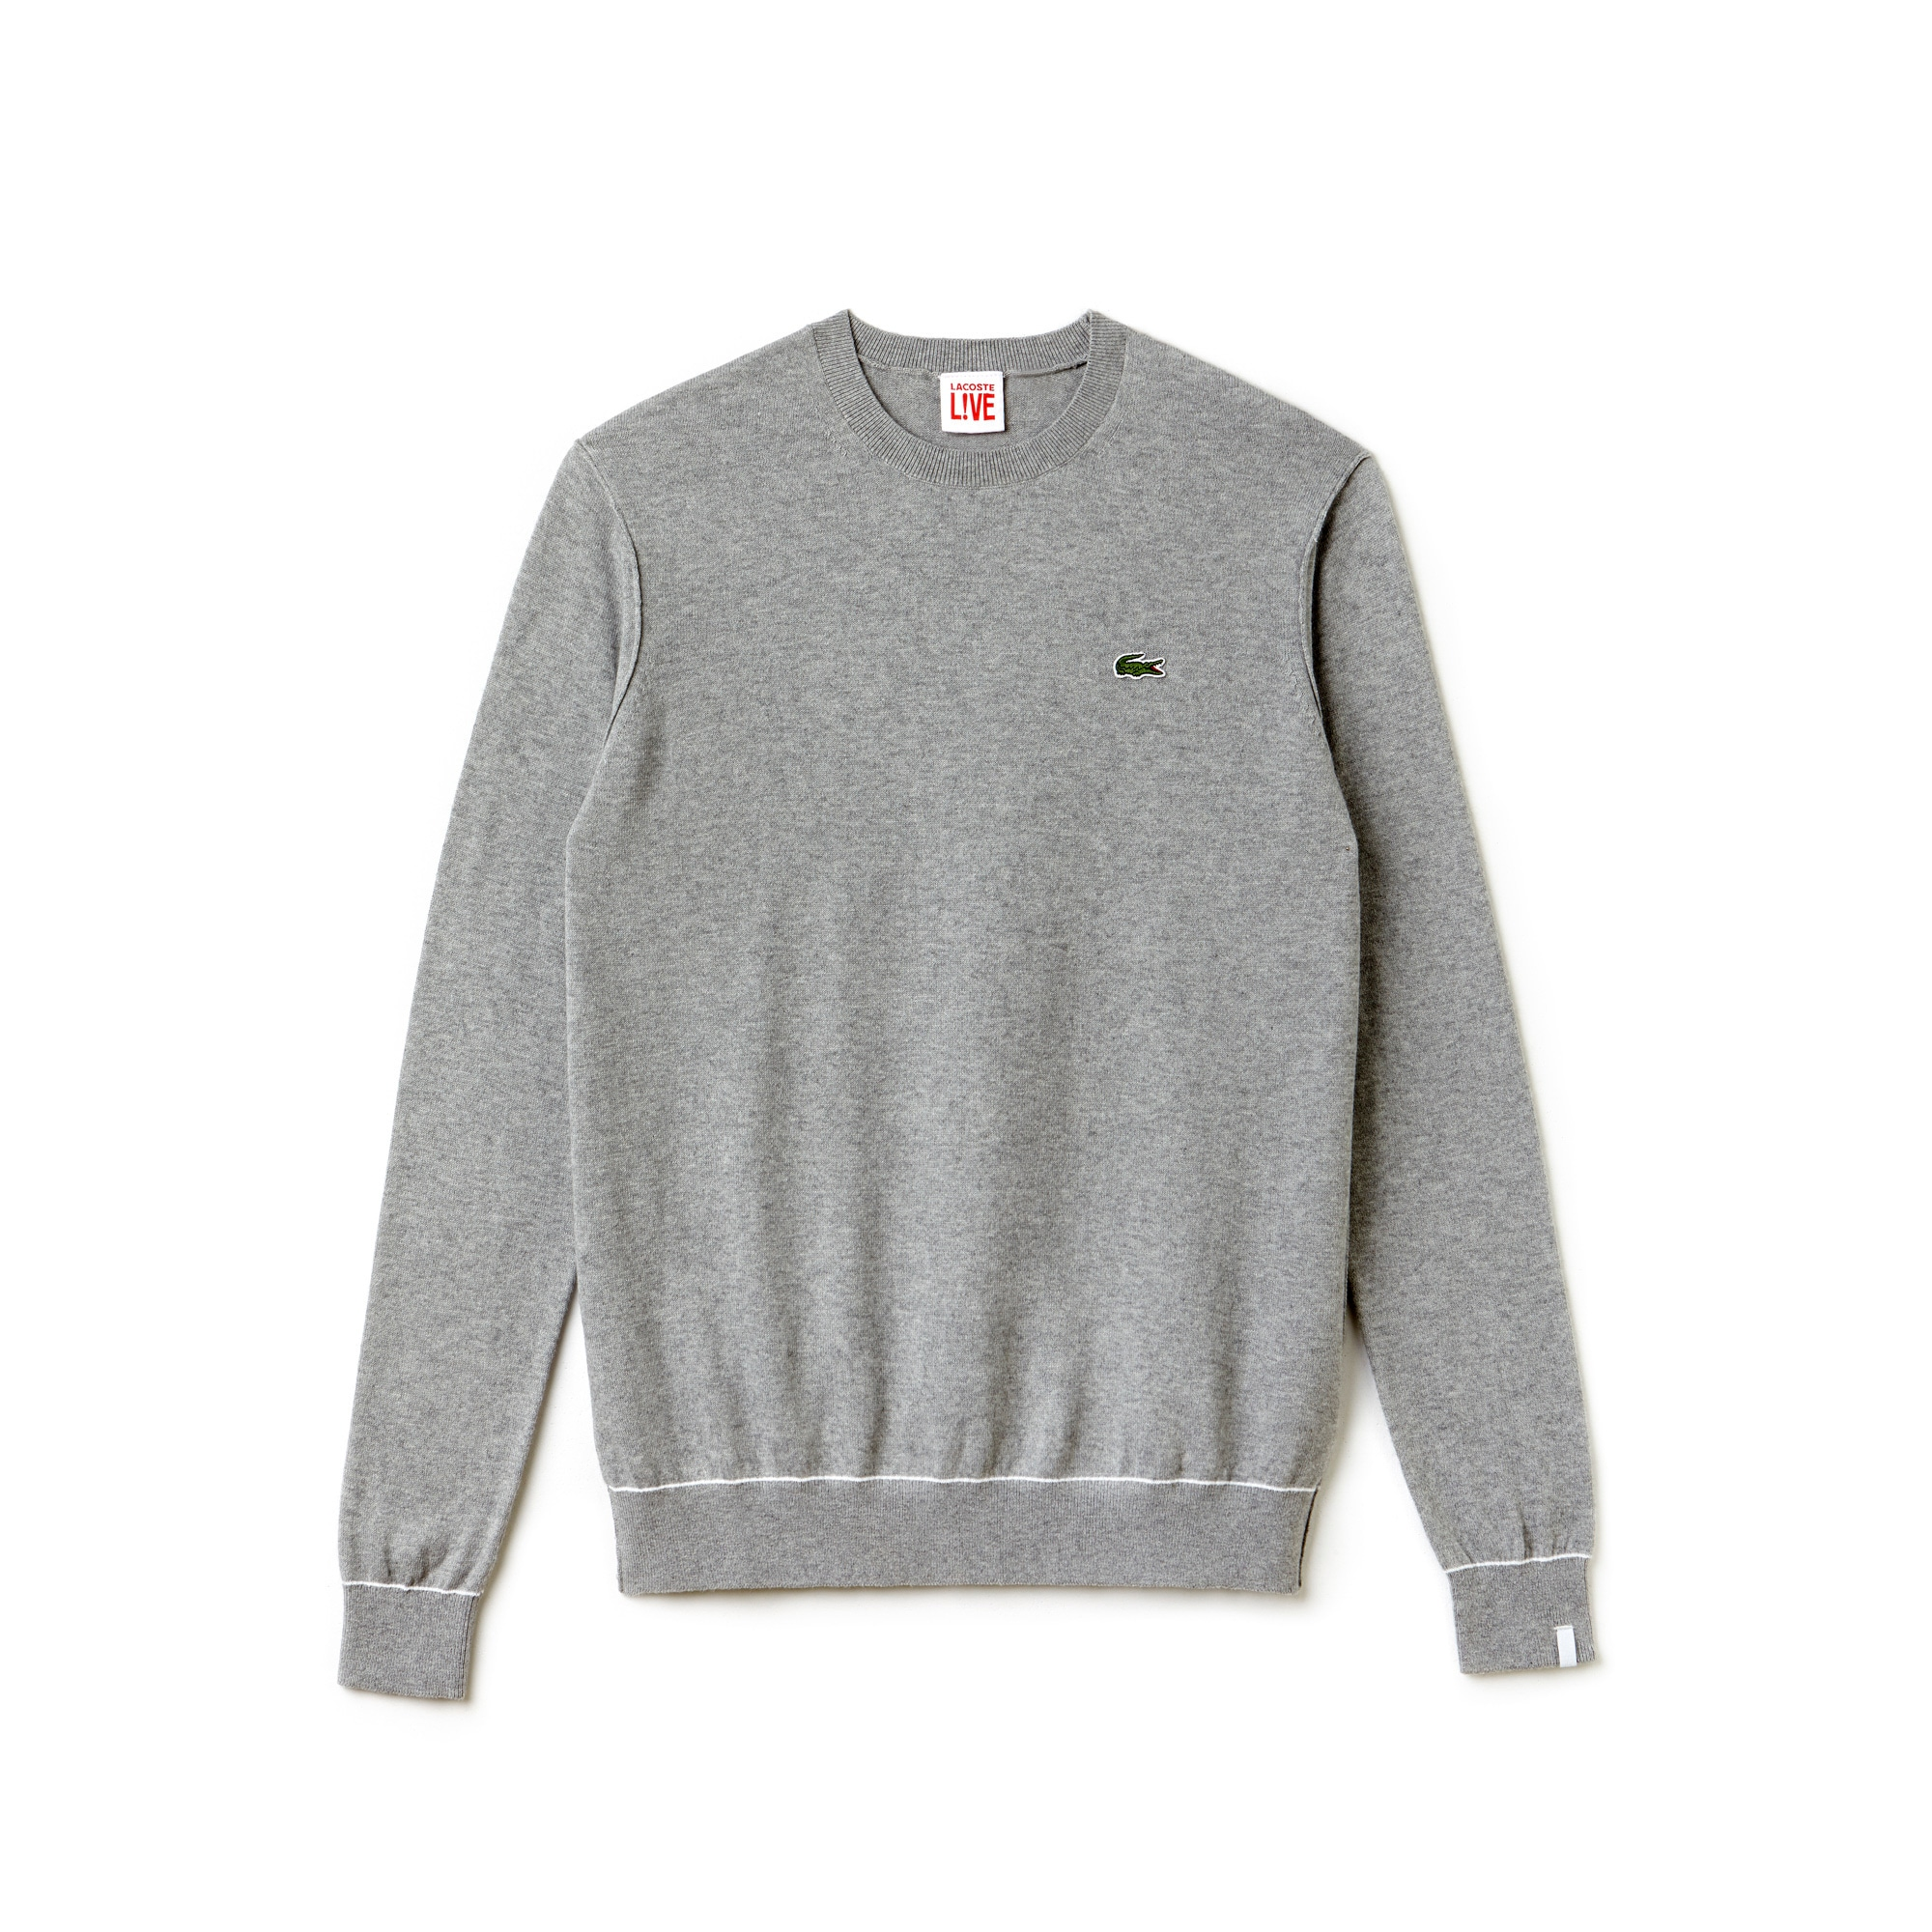 Men's Lacoste LIVE Cotton And Cashmere Jersey Sweater